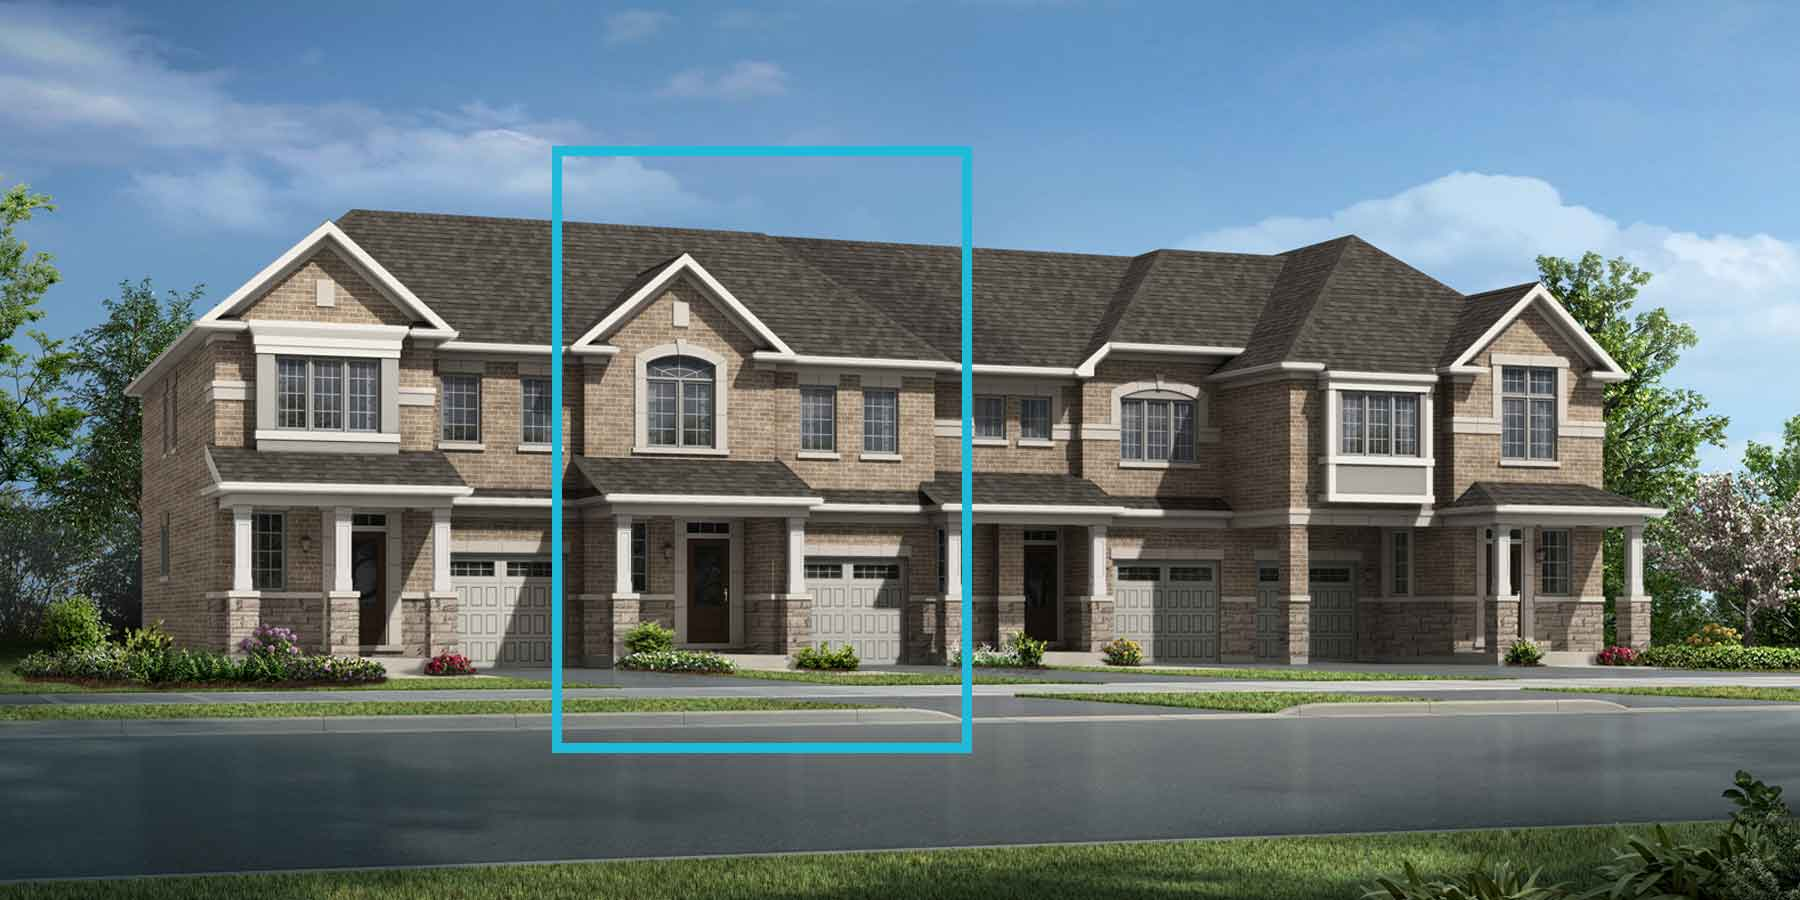 Forestbrook Plan TownHomes at Seaton Whitevale in Pickering Ontario by Mattamy Homes